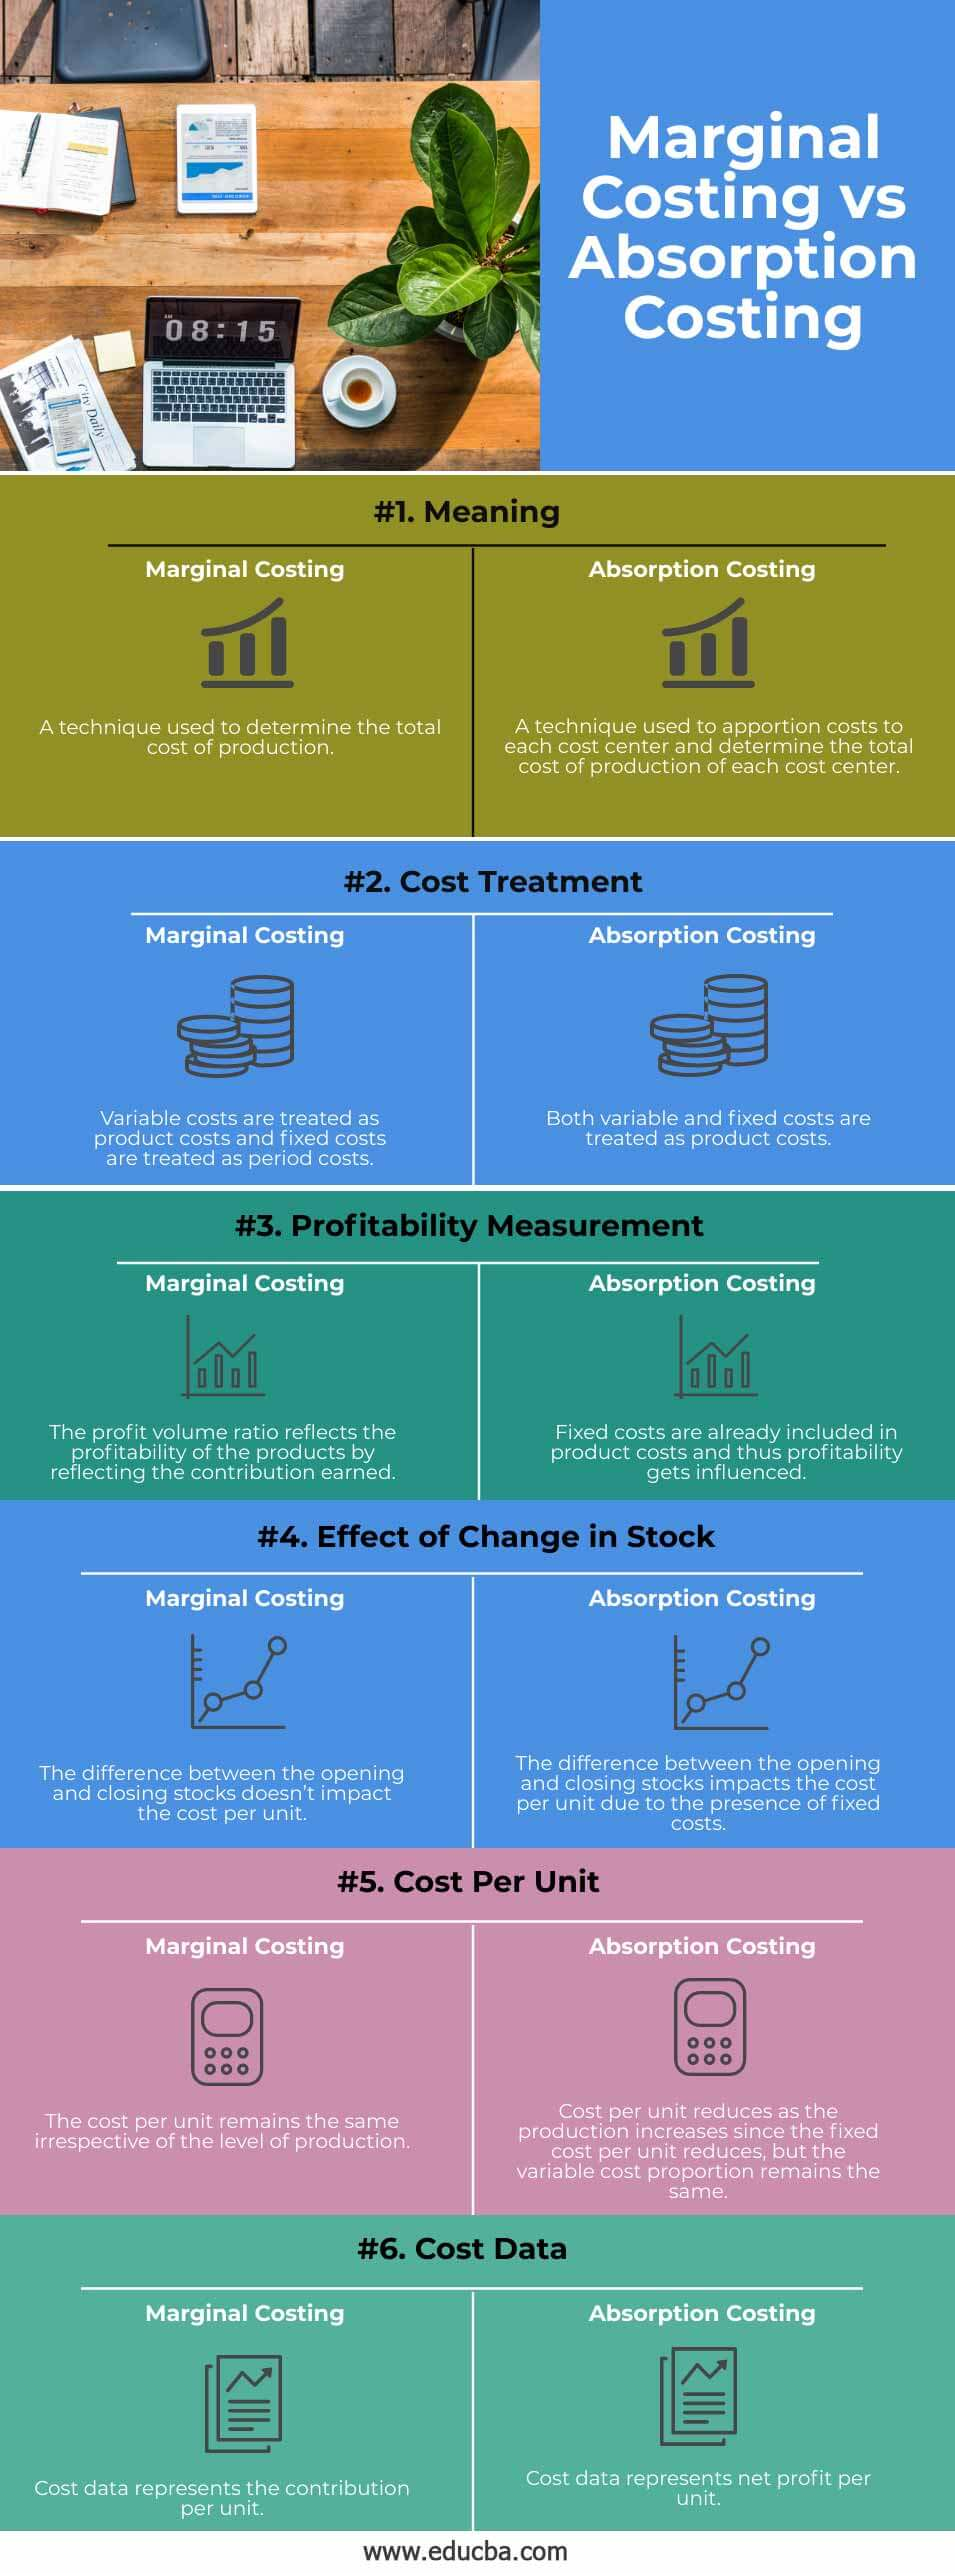 Marginal-Costing-vs-Absorption-Costing-info